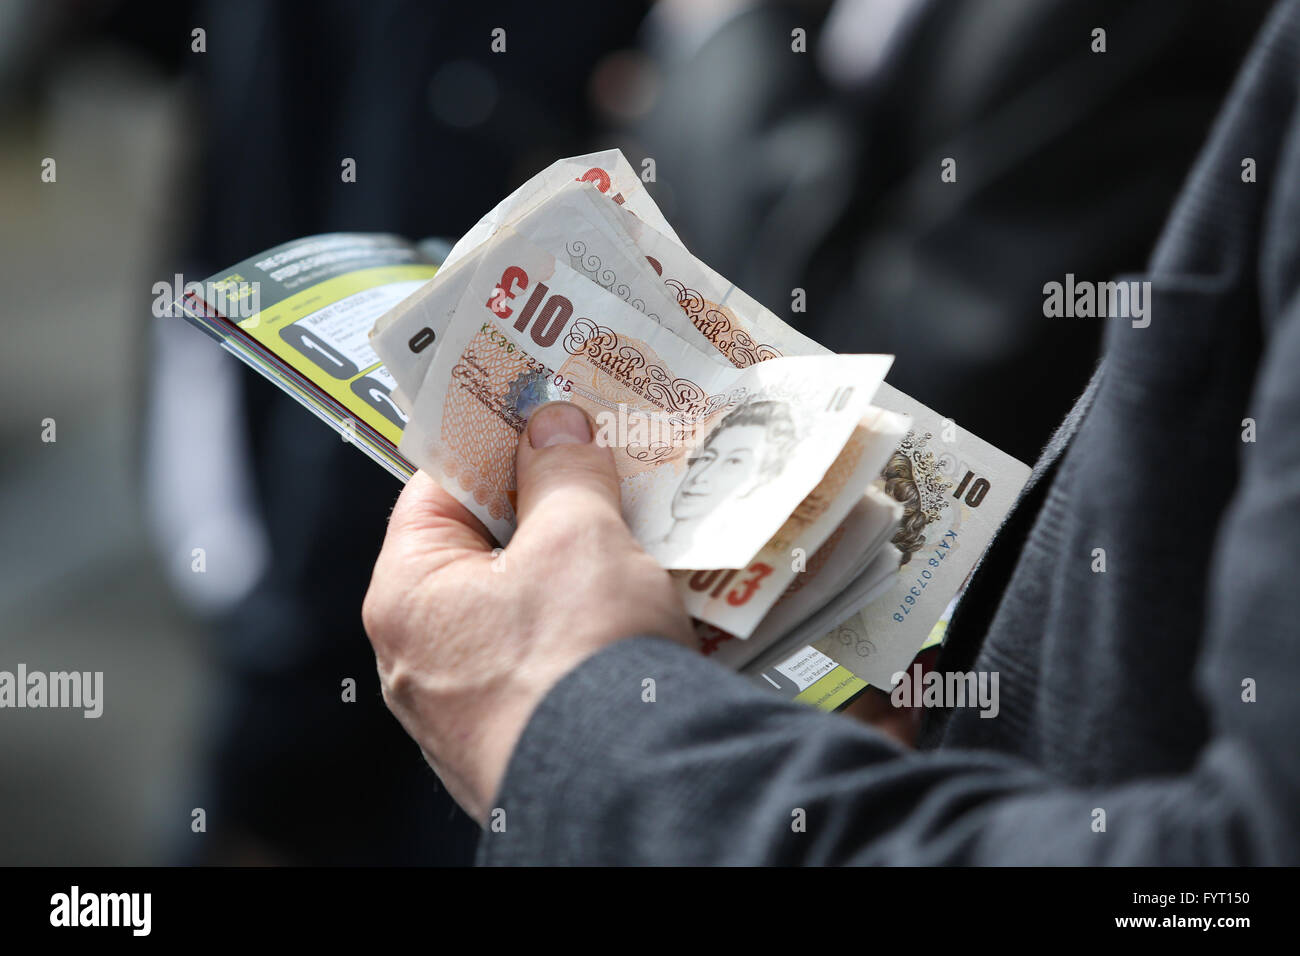 A man holds a wad of cash at the 2016 Grand National at AIntree Racecourse in Liverpool, UK. - Stock Image